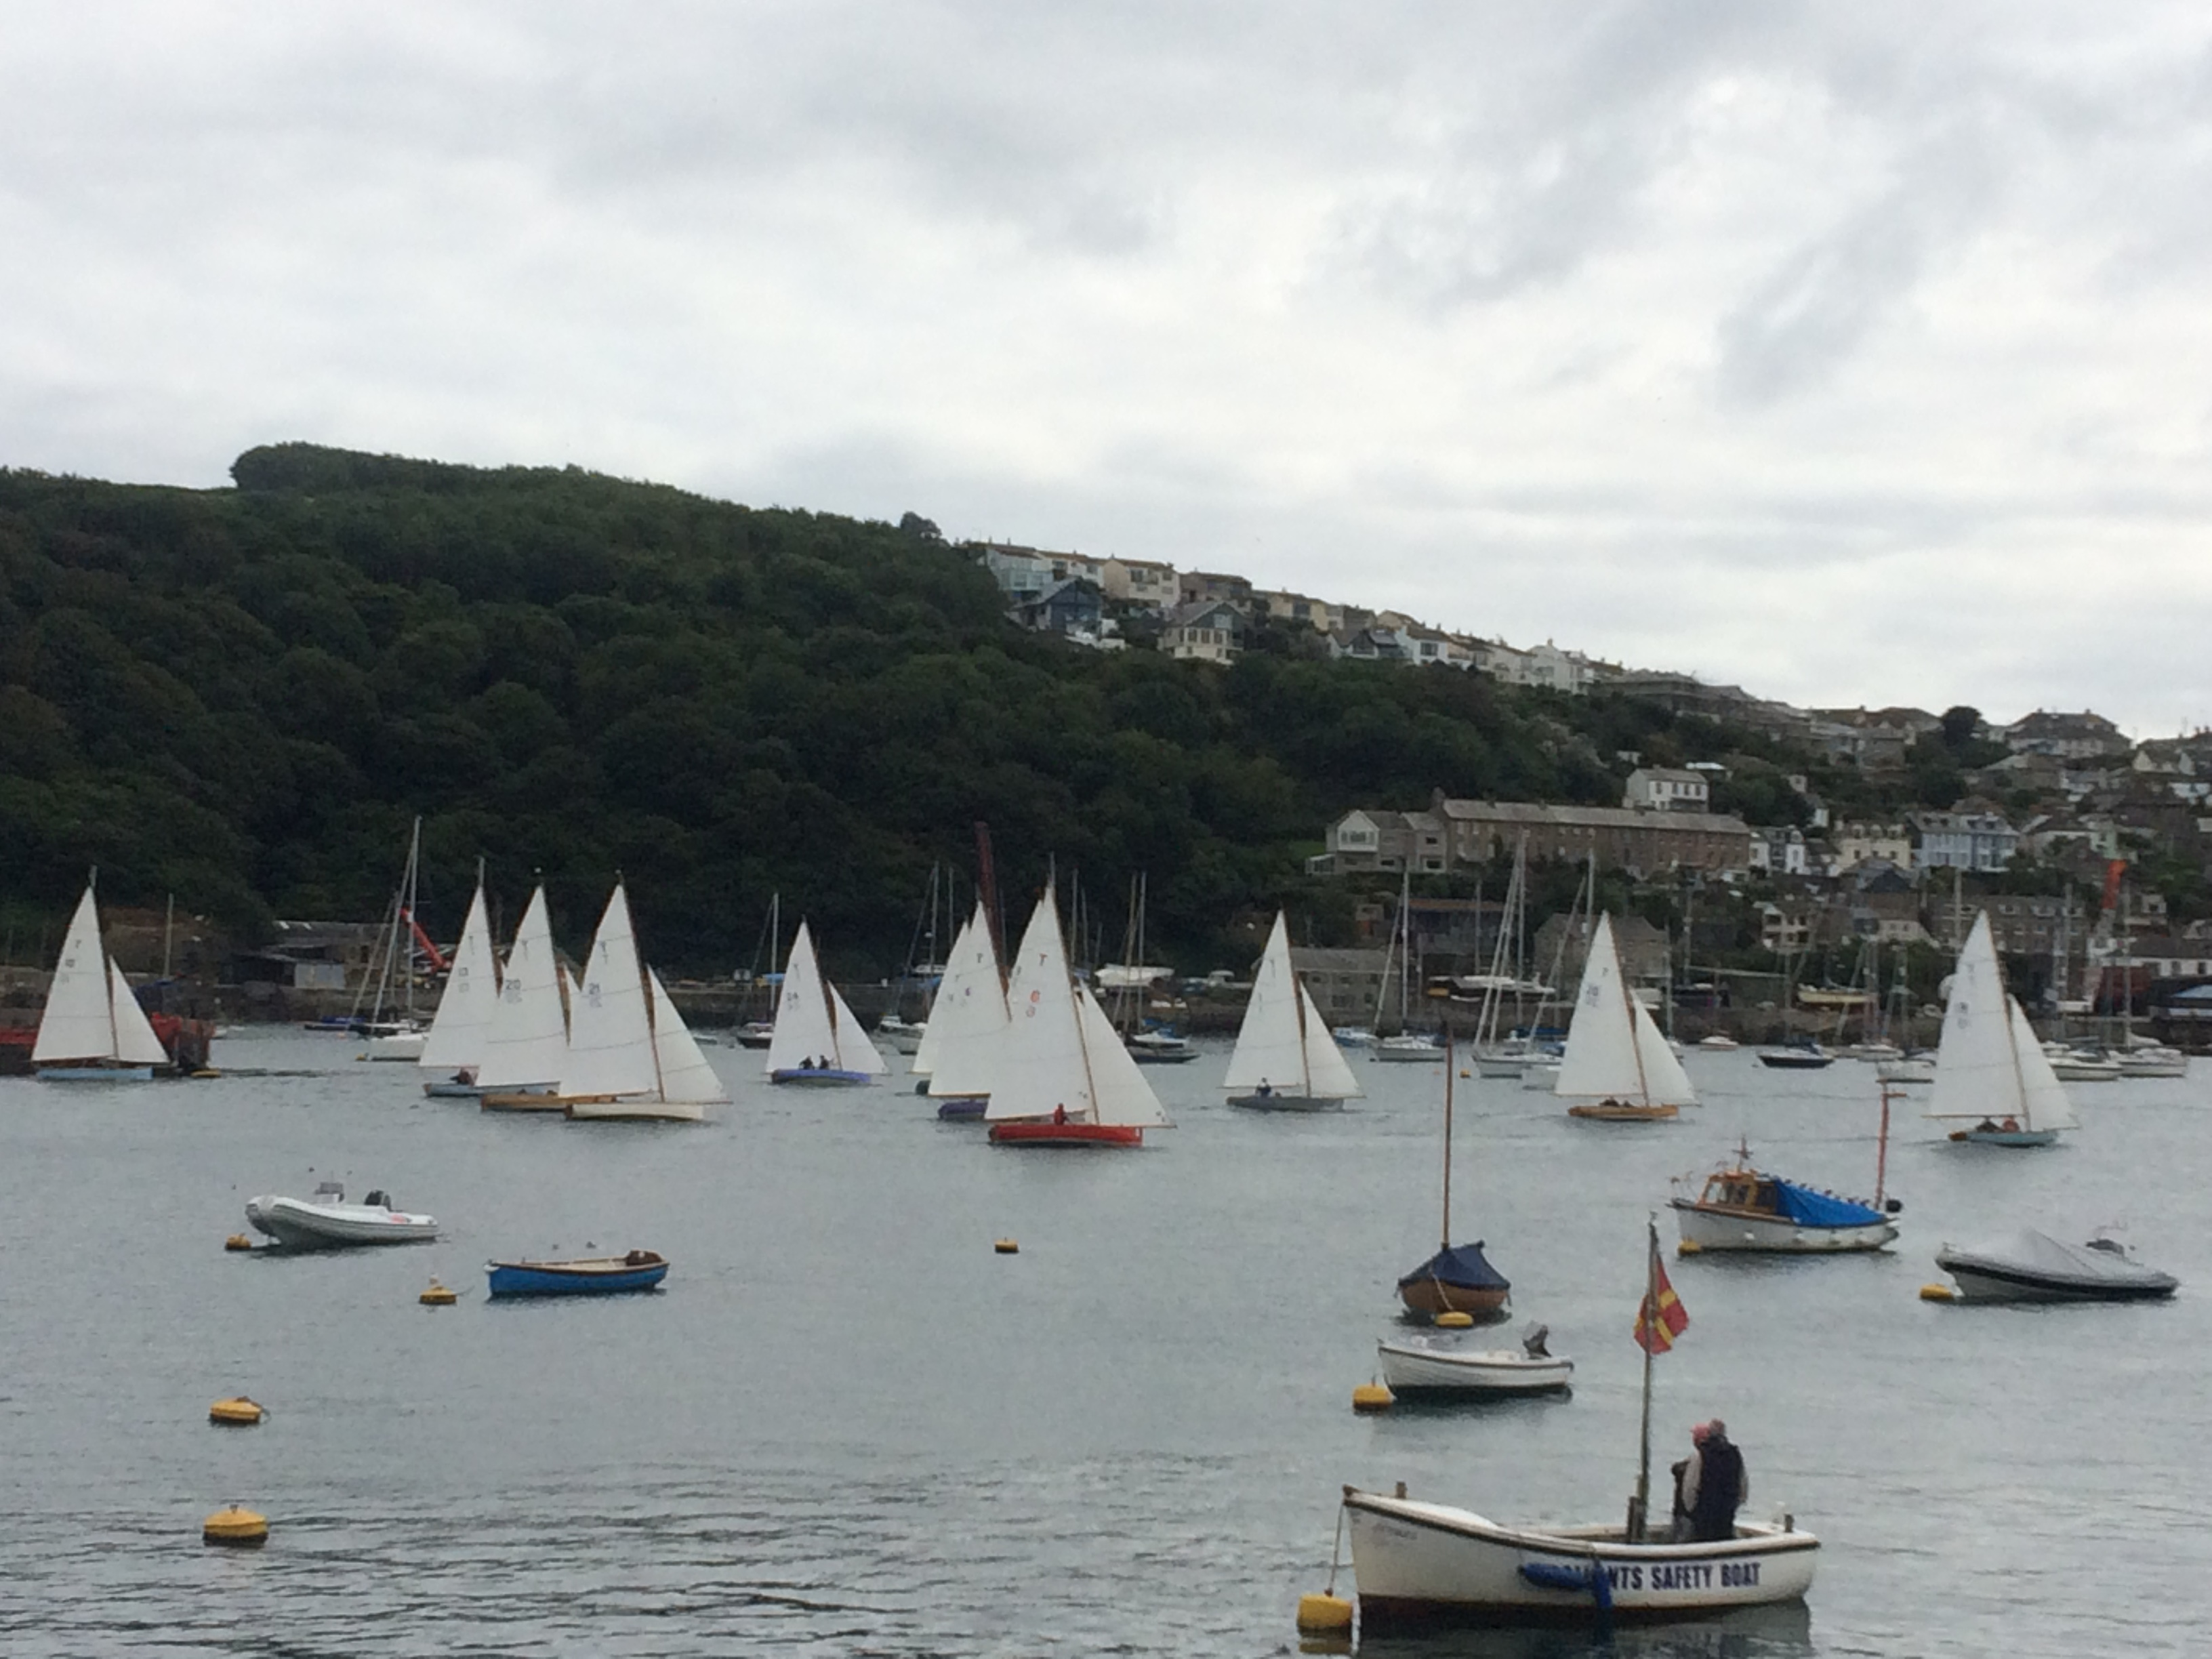 Troy class one design boats racing in Fowey